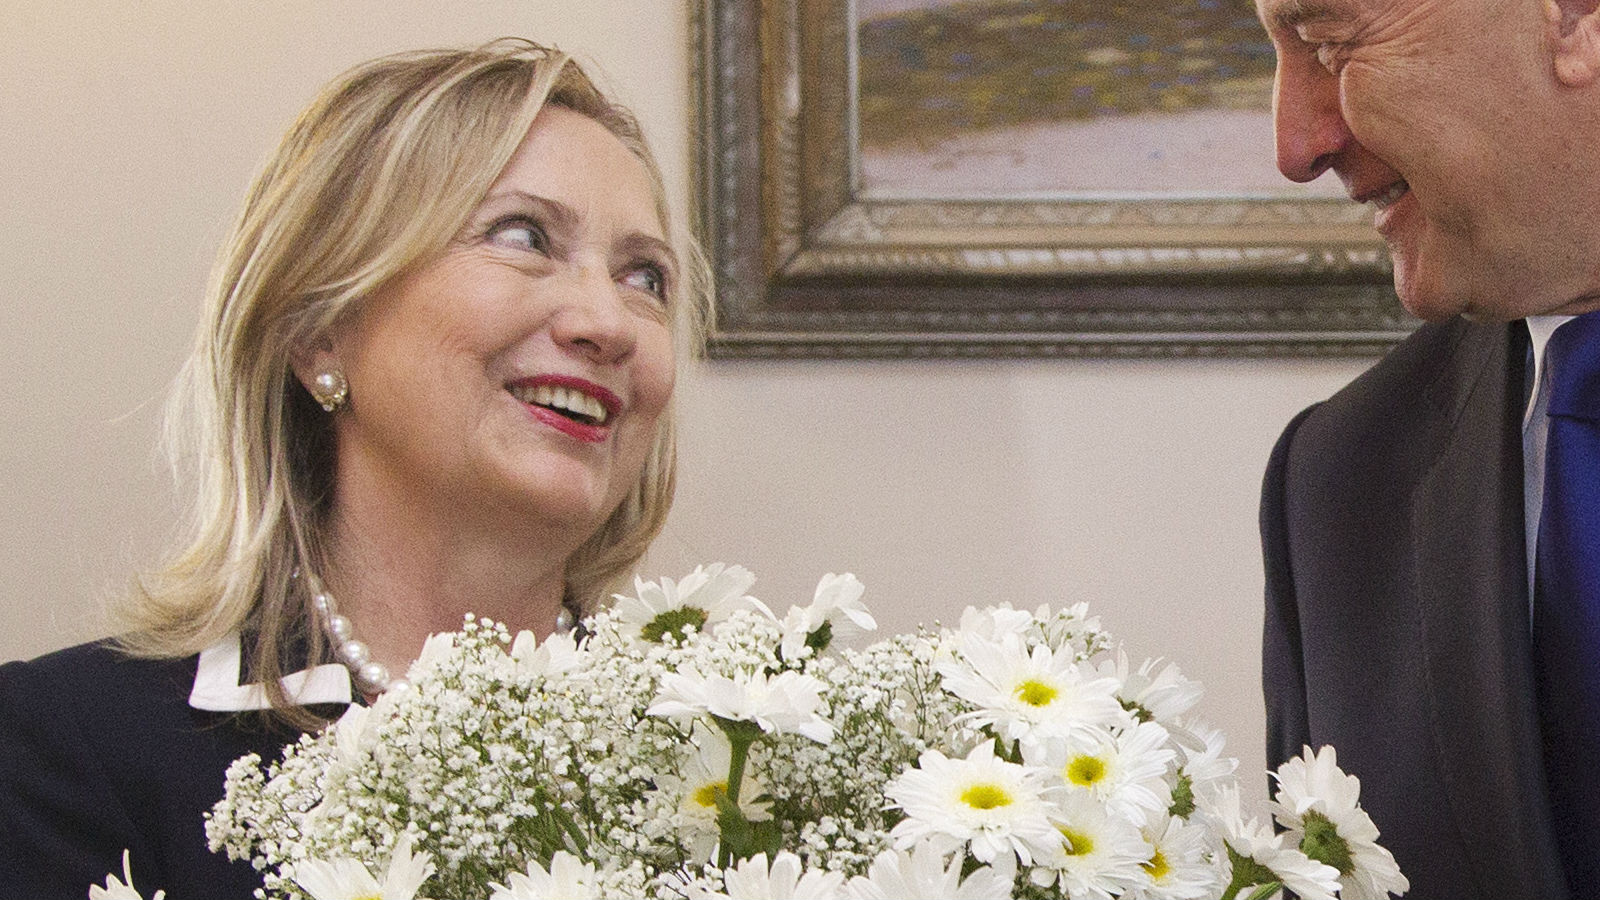 Hillary Clinton receiving a bouquet of flowers from the President of Latvia.